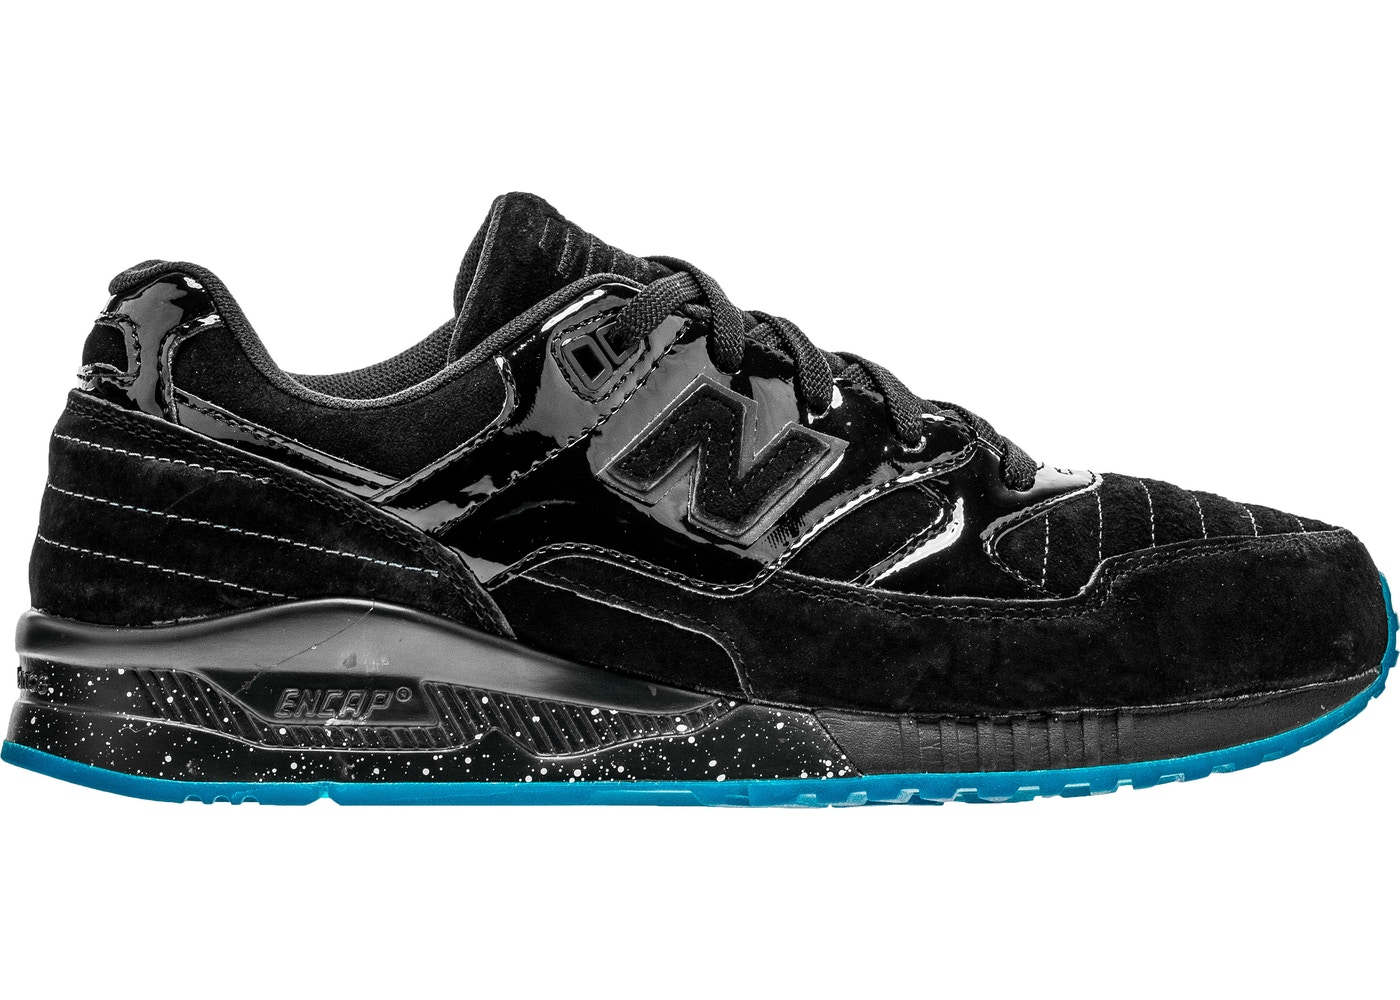 official photos 5e19e 59bdb New Balance 530 Shoe Palace 23rd Anniversary